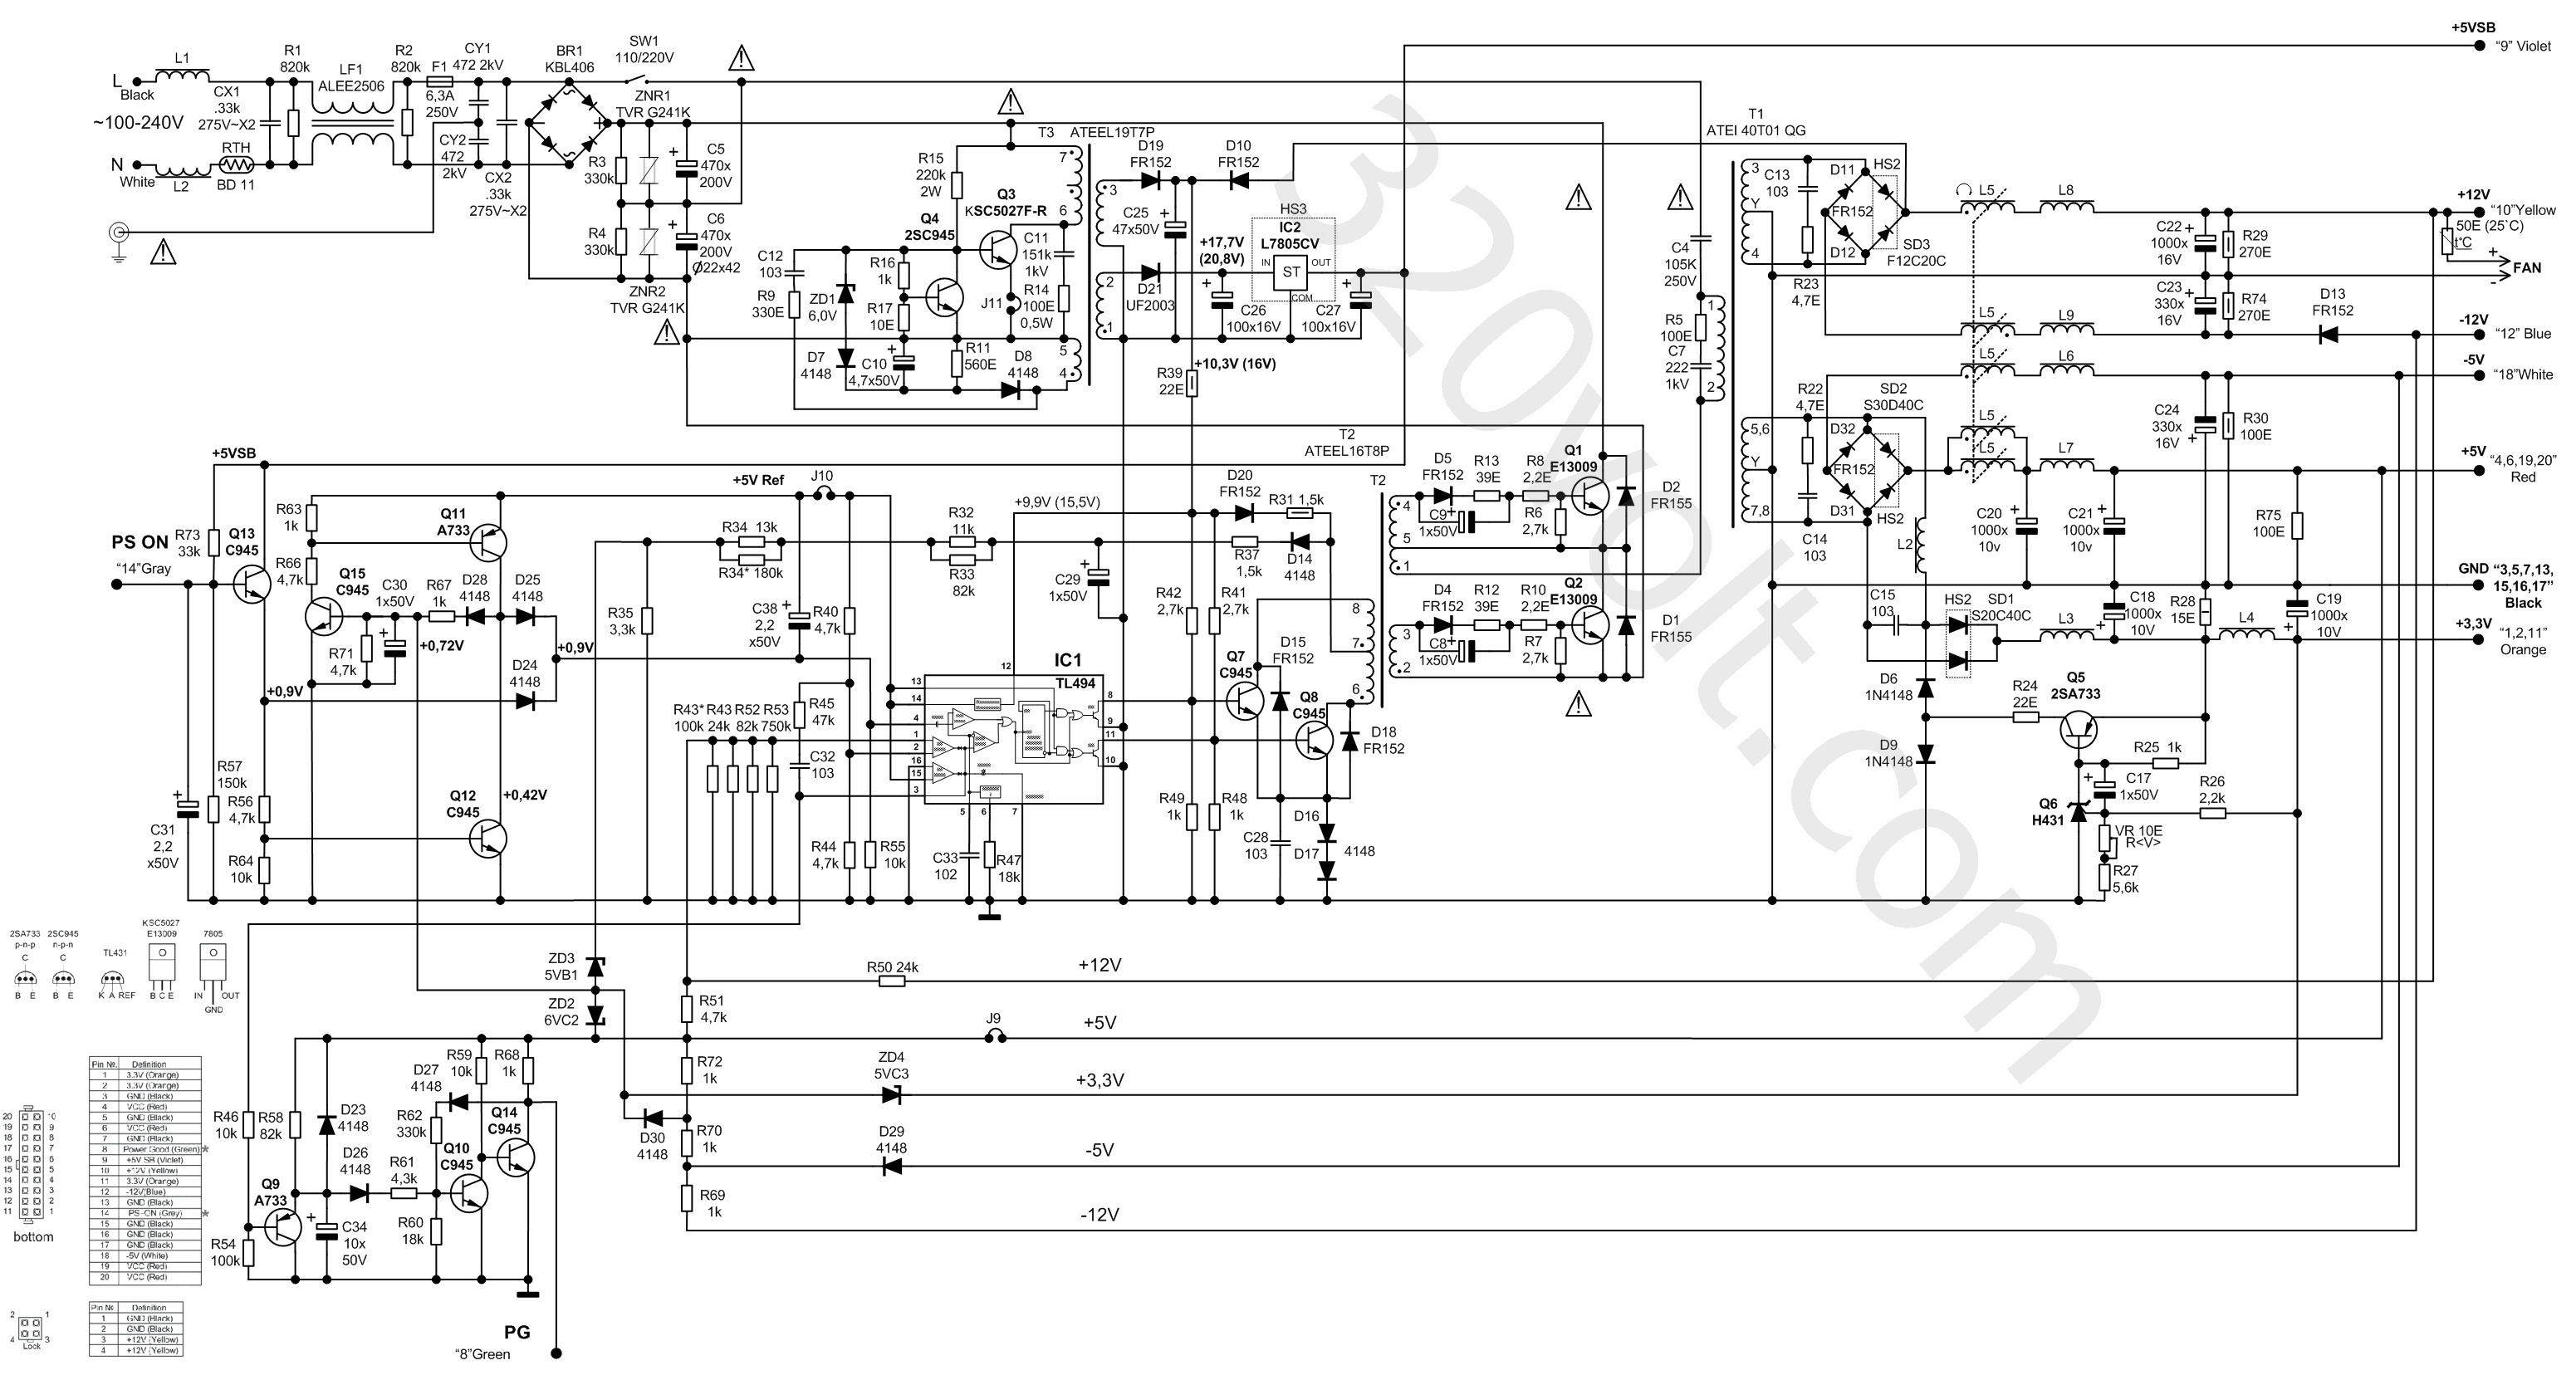 Wiring Diagram Atx Switching Power Supply Circuit Diagram Smps Tl494 Octek X25d 250w Elektronik